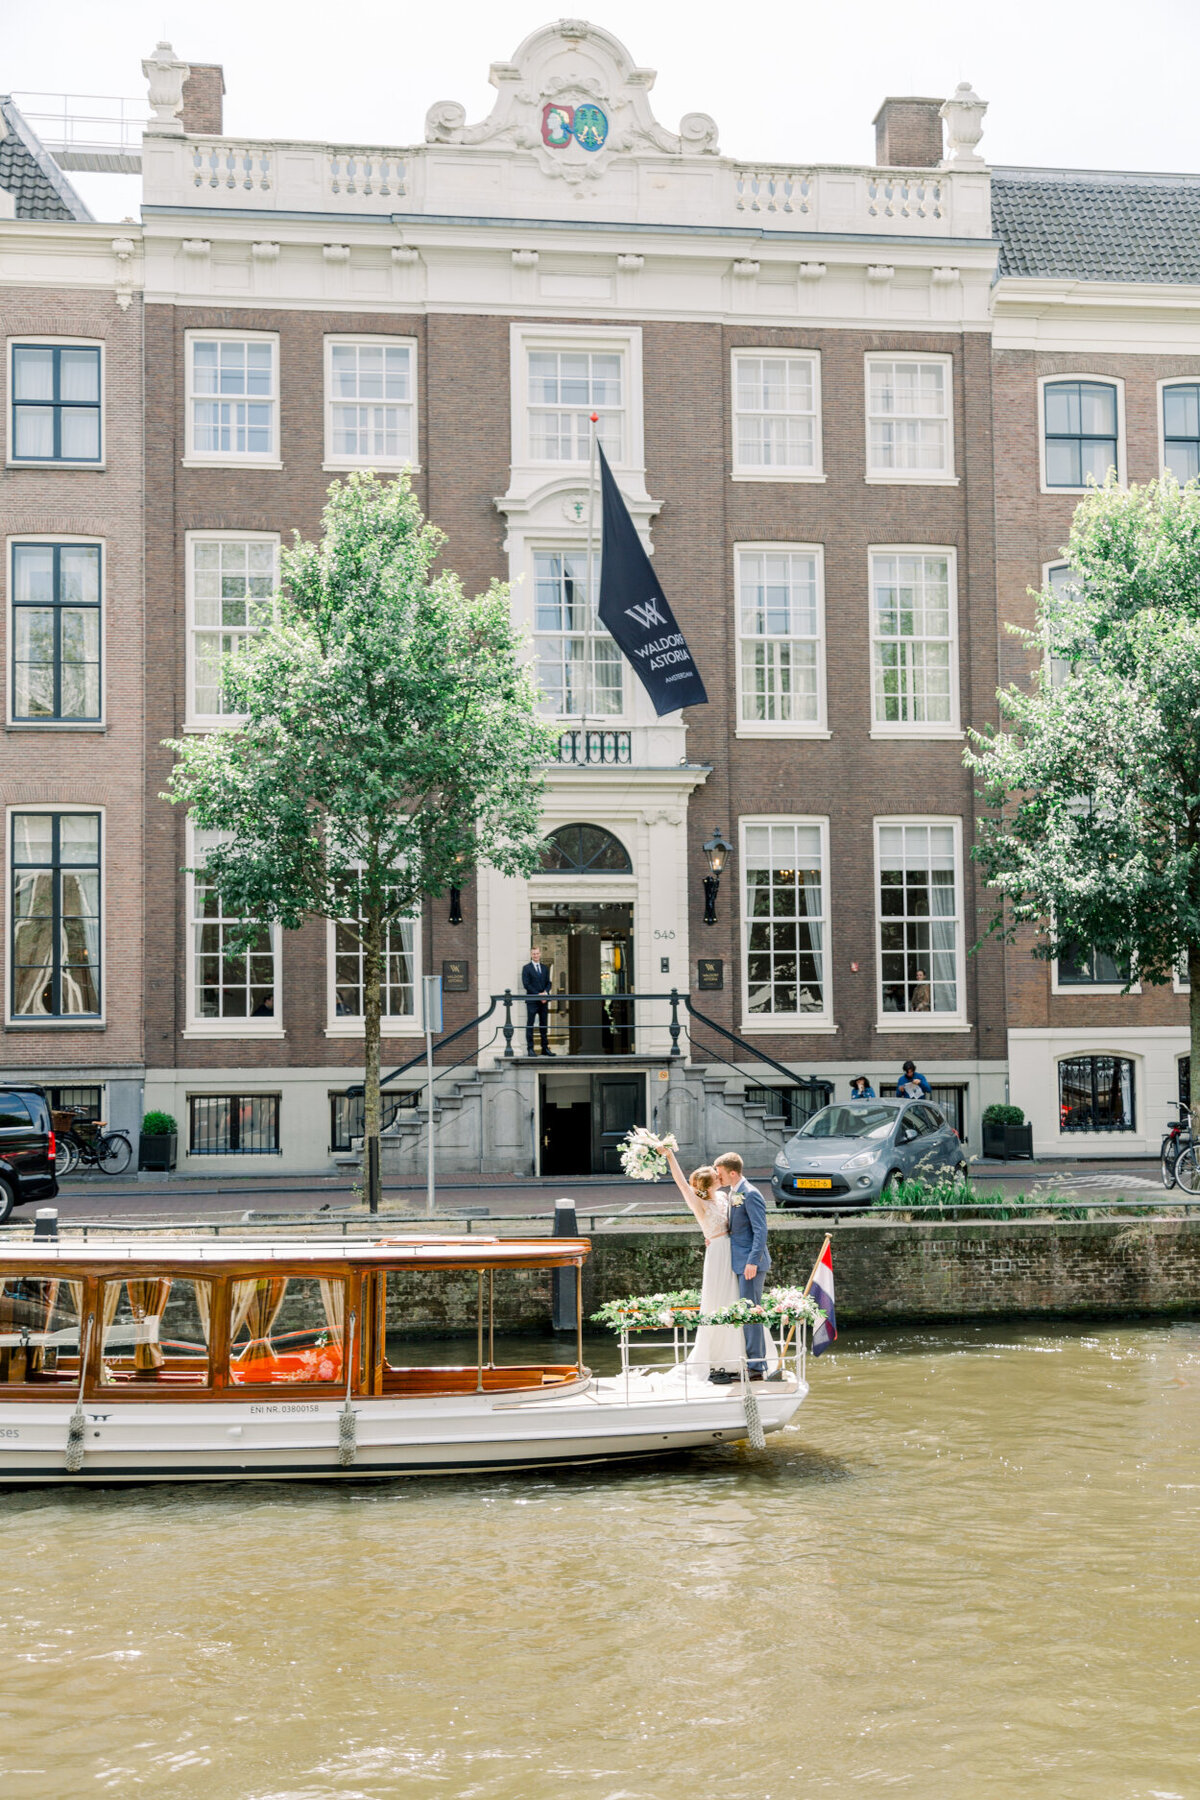 Wedding couple celebrating their wedding on a canal boat tour in Amsterdam for a photo shoot organized by Lovely & Planned